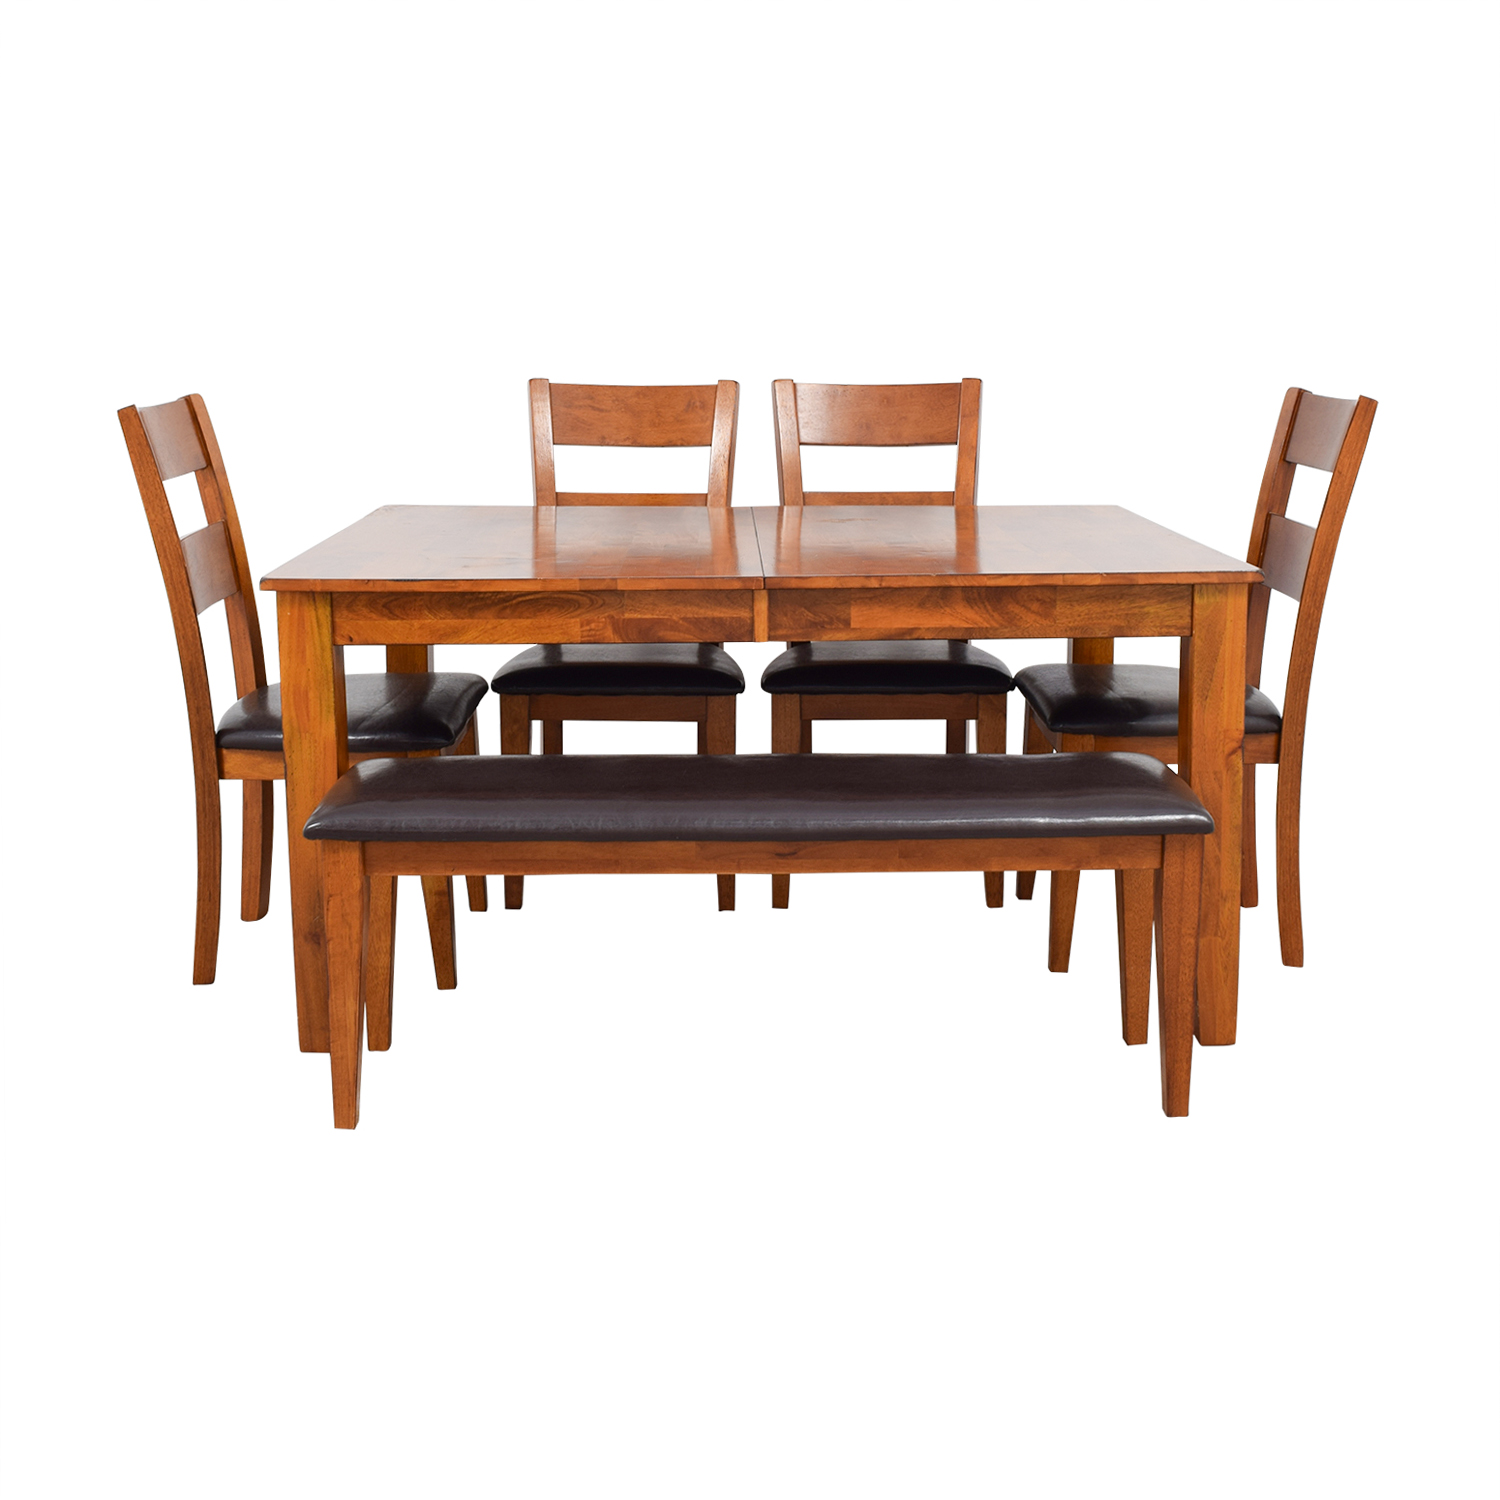 Steve Silver Co Mango Butterfly Leaf Dining Table with Chairs and Bench Steve Silver Co